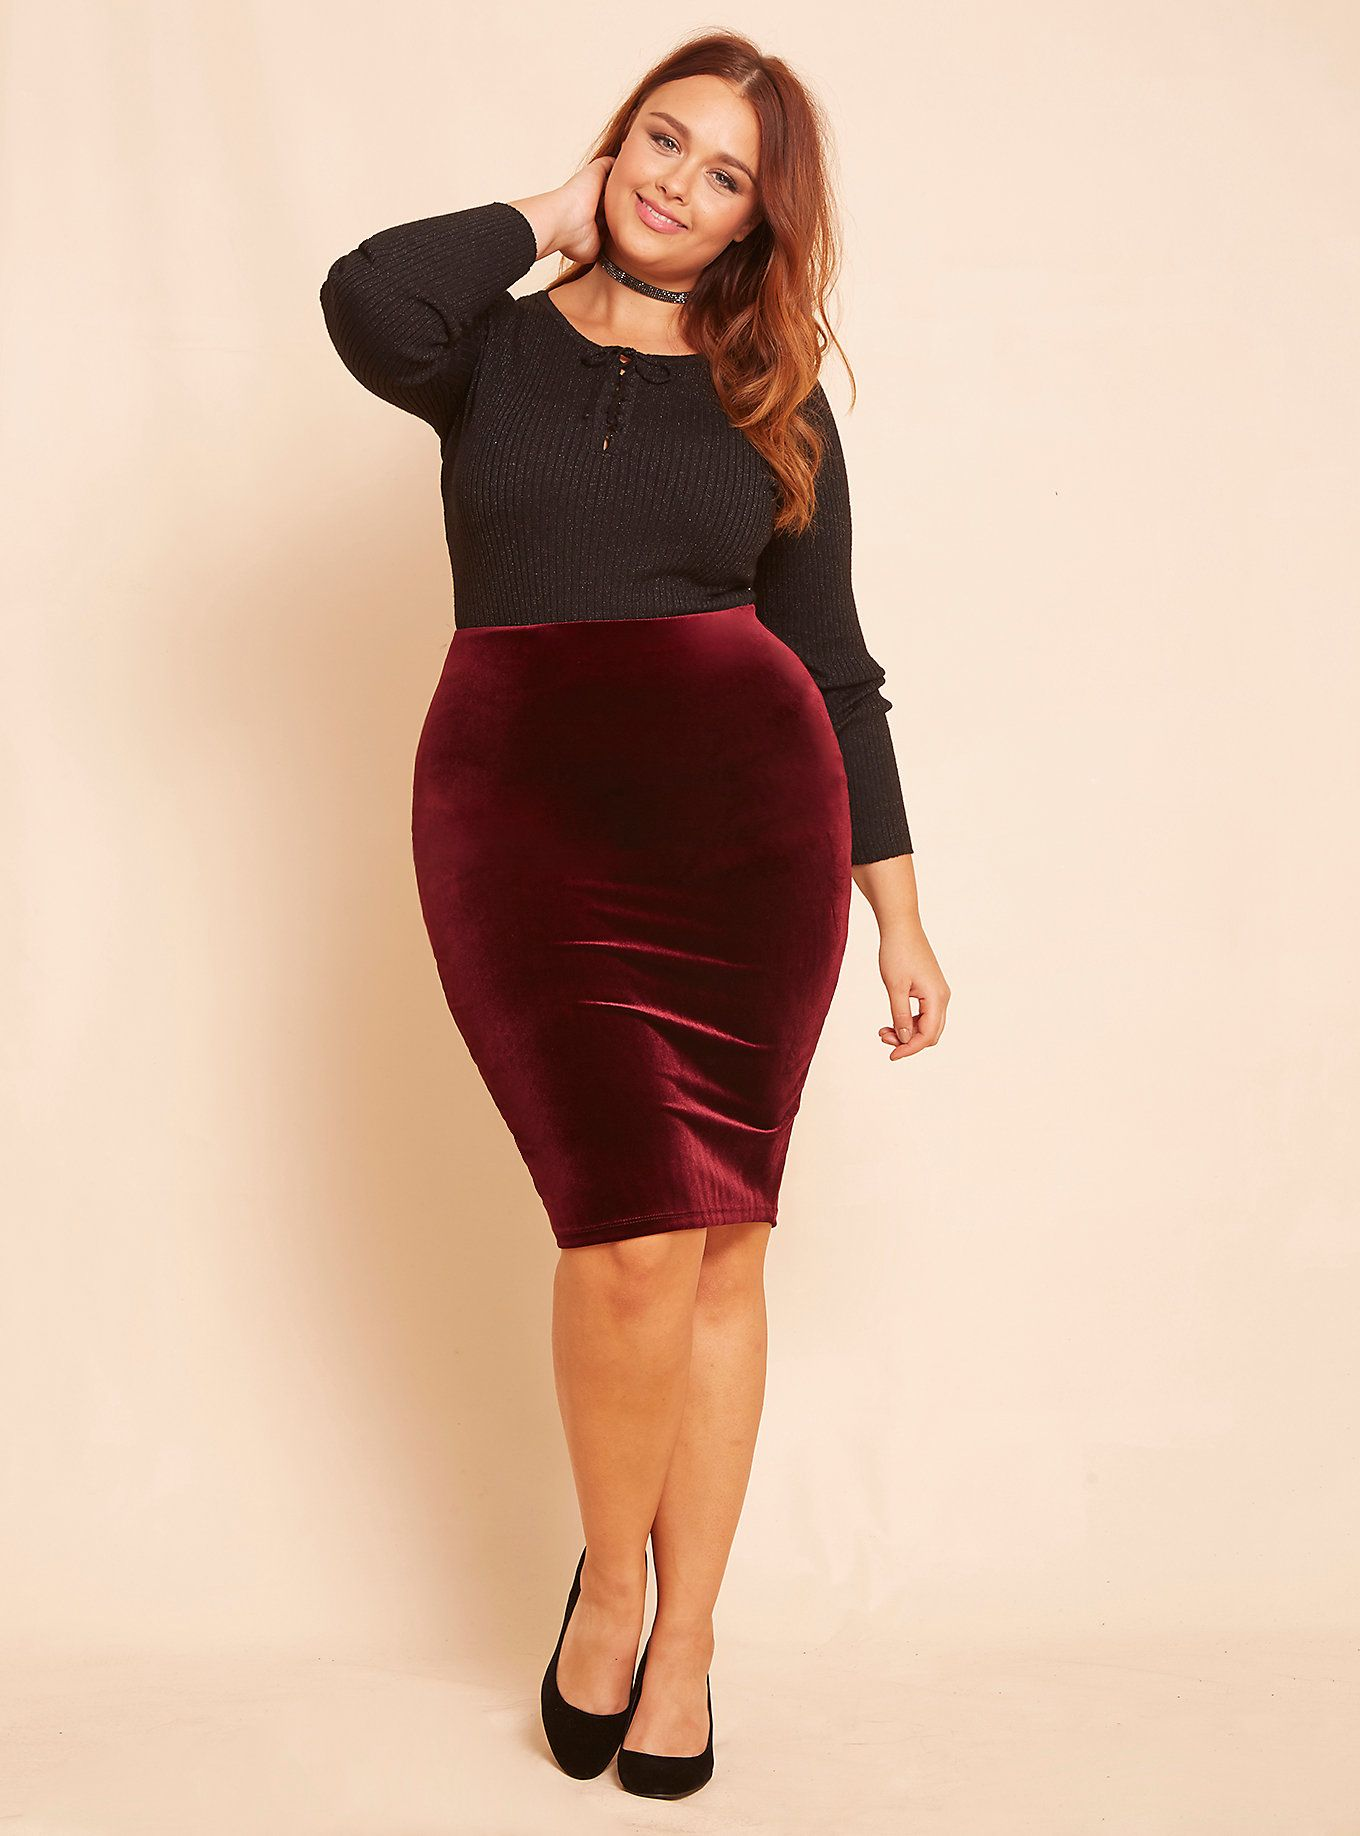 85b0e0f7830564 Viva la velvet! This pencil skirt just makes us want to celebrate, can't ya  tell? The clingy-yet-stretchy burgundy velvet totally crushes it with a  pull-on, ...